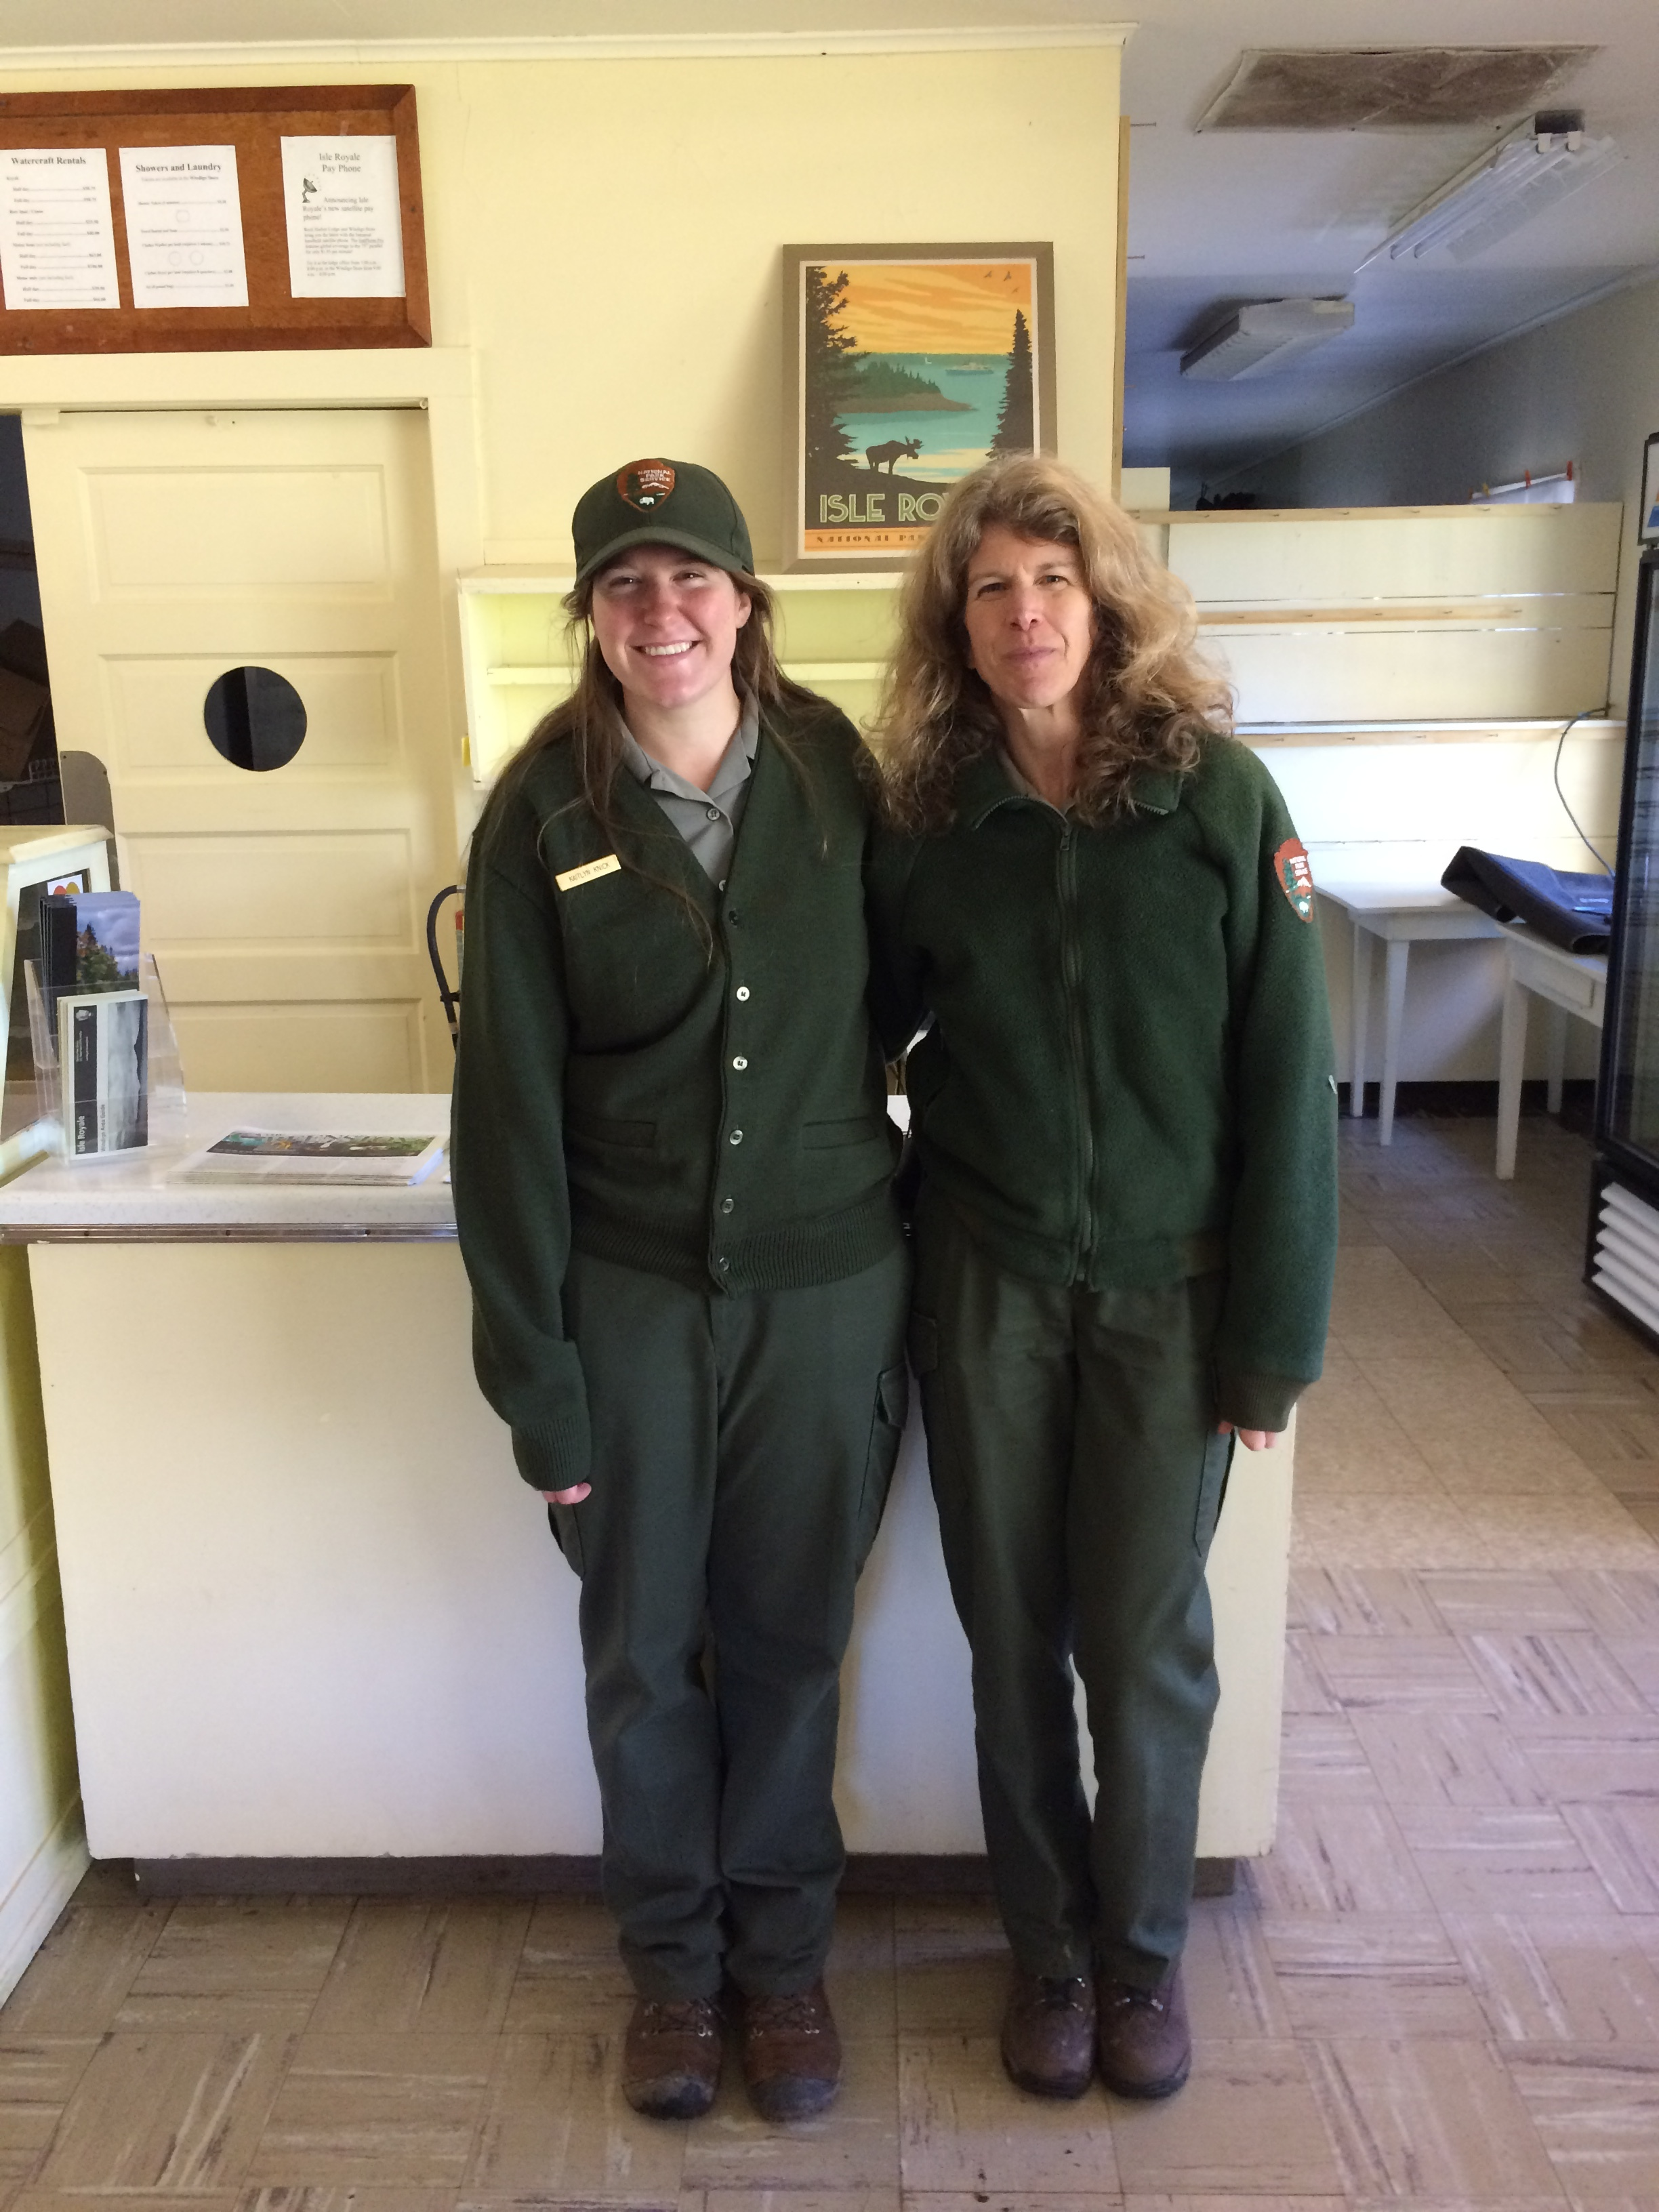 Isle Royale National Park Rangers Valerie and Kaitlyn. Thank you for sharing your stories and ideas. I hope to see you again.